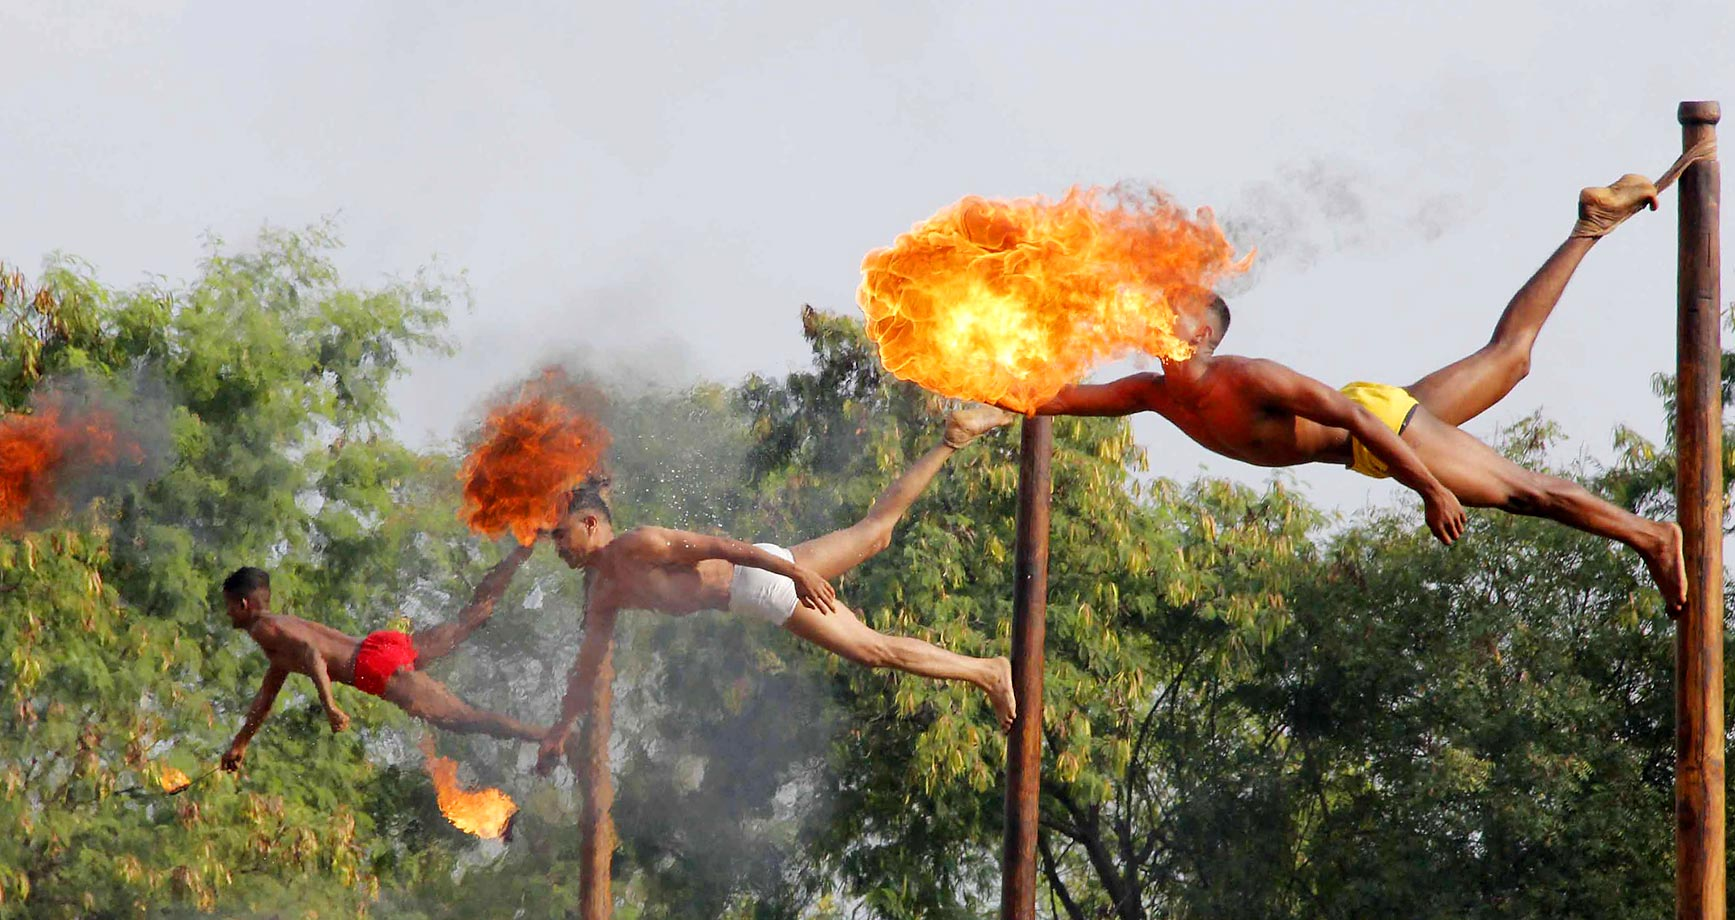 Indian soldiers take part in a demonstration of 'fire breathing' at the start of Operation Hand in Hand.